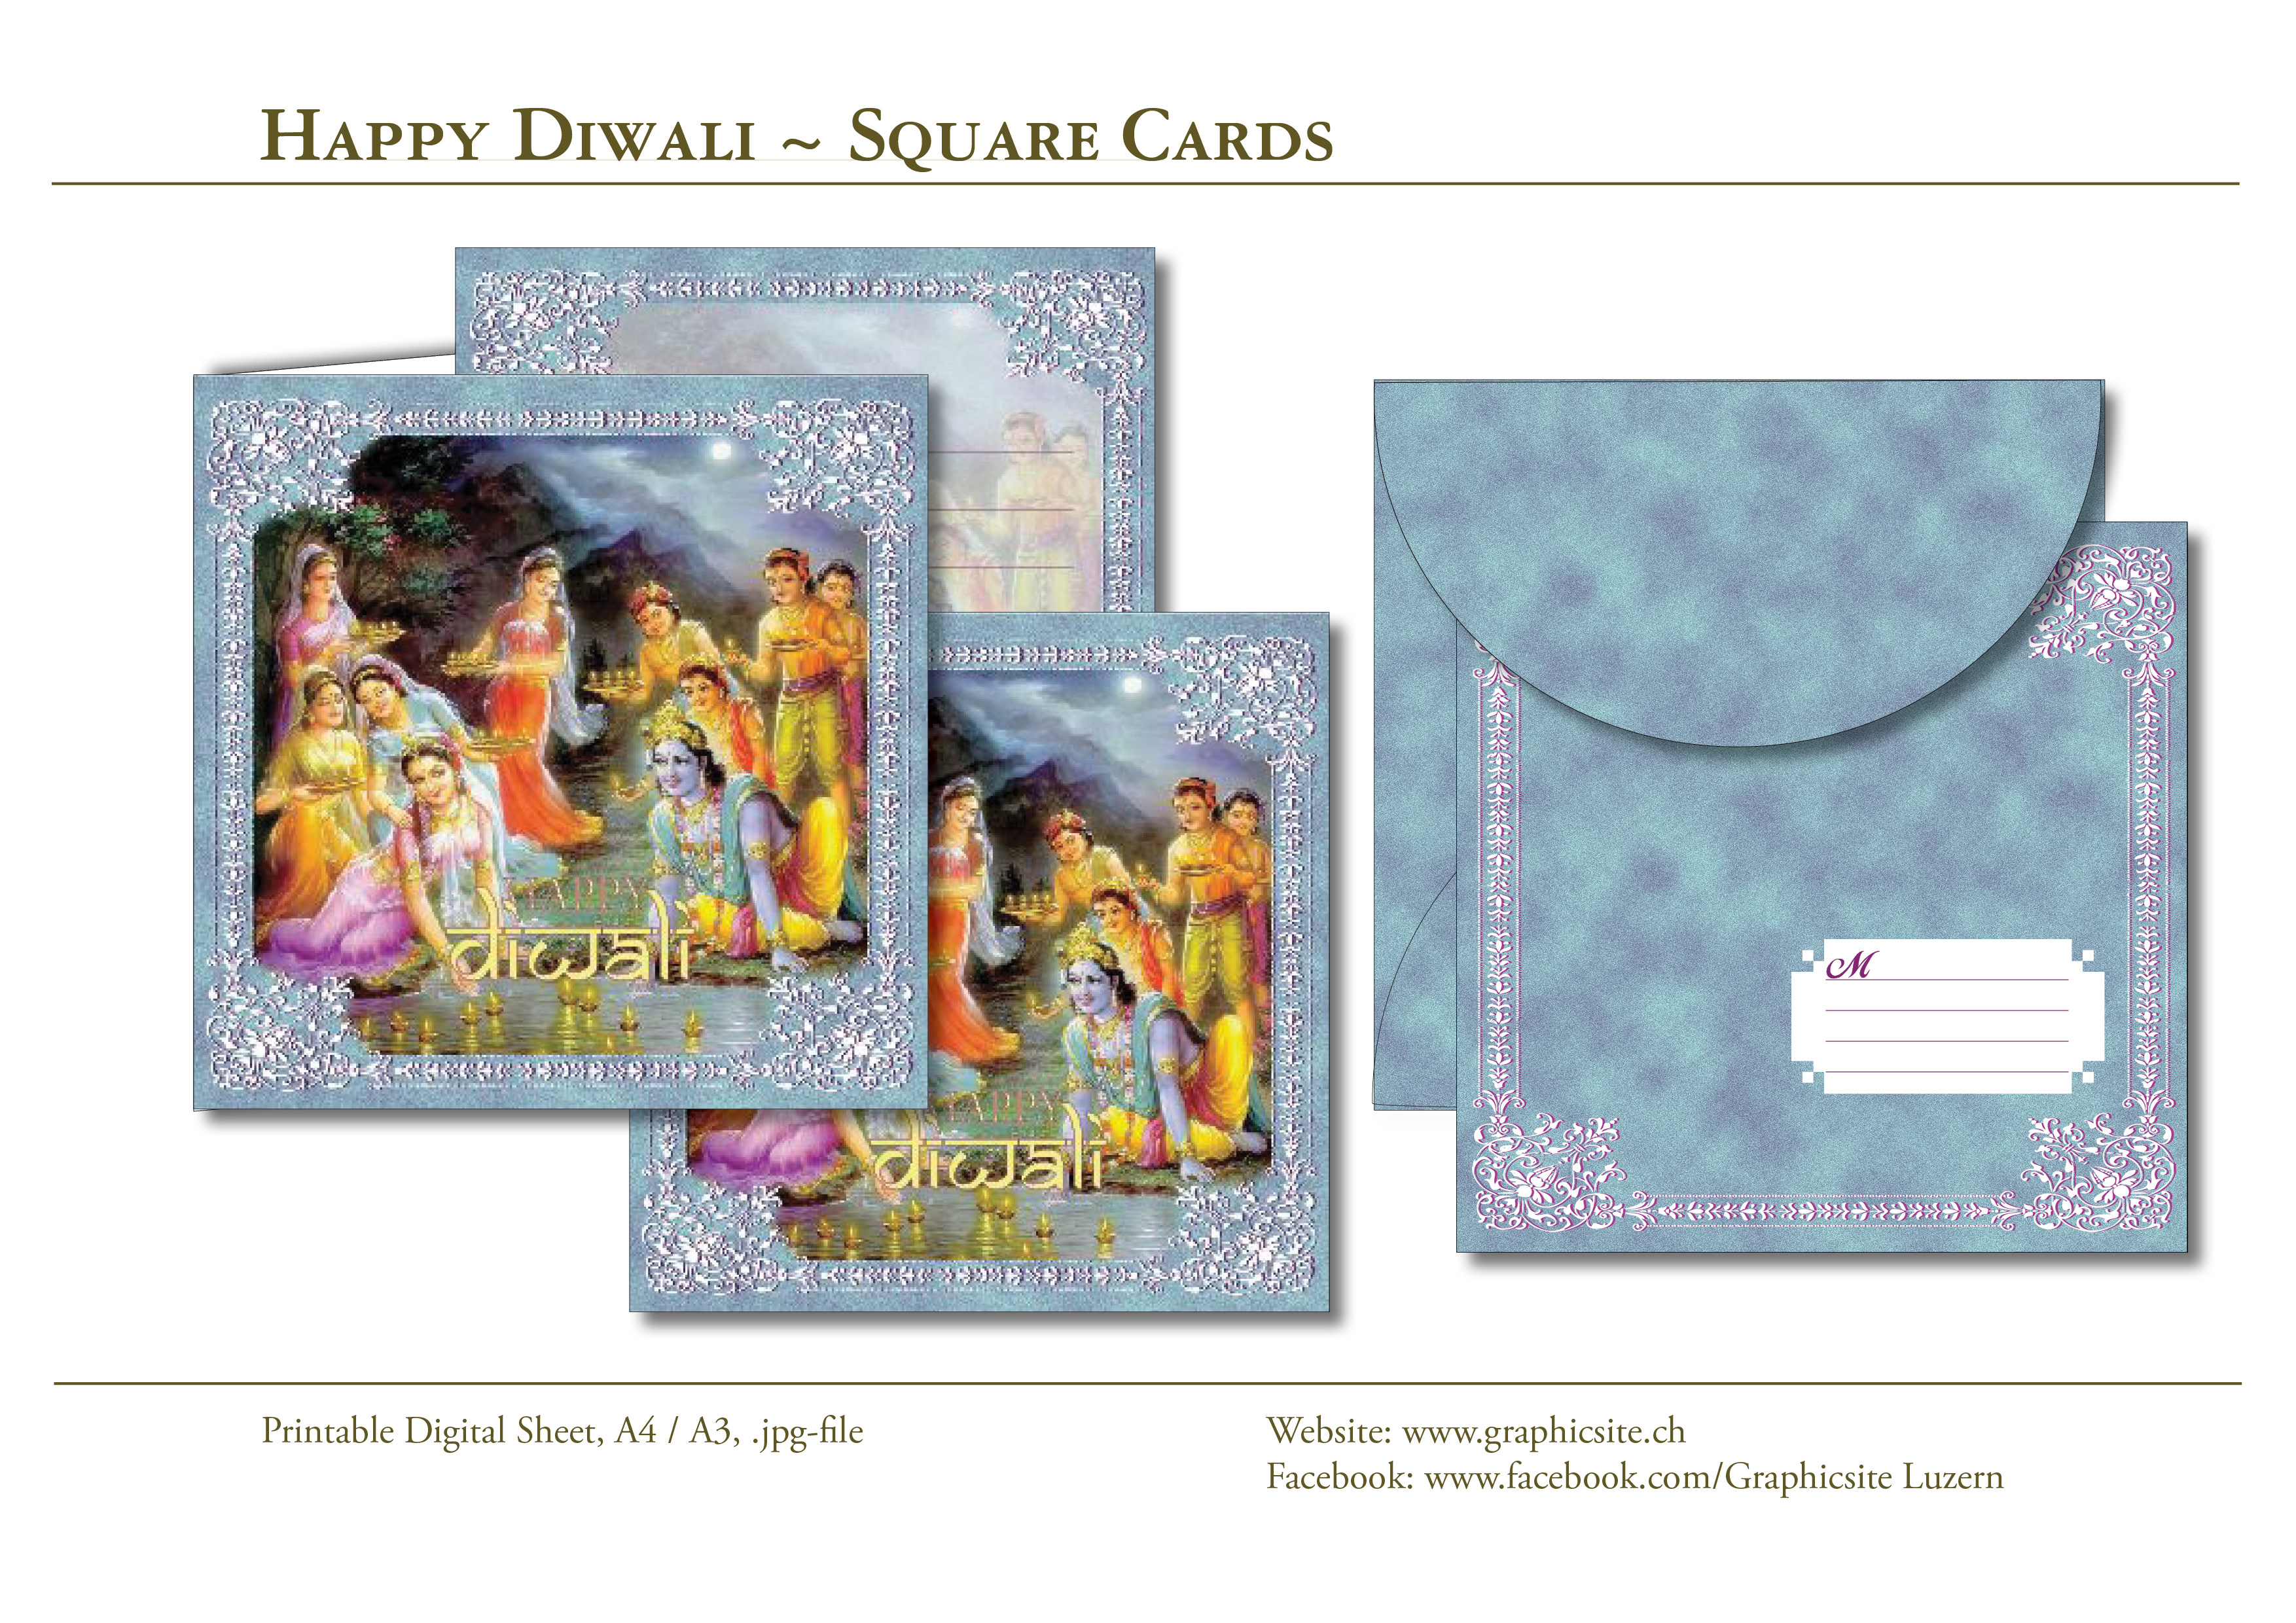 Printable Digital Sheets - Card Collections - India - Diwali - #cards, #printables, #download, #greetingcards, #invites, #graphicdesign, #luzern, #schweiz,